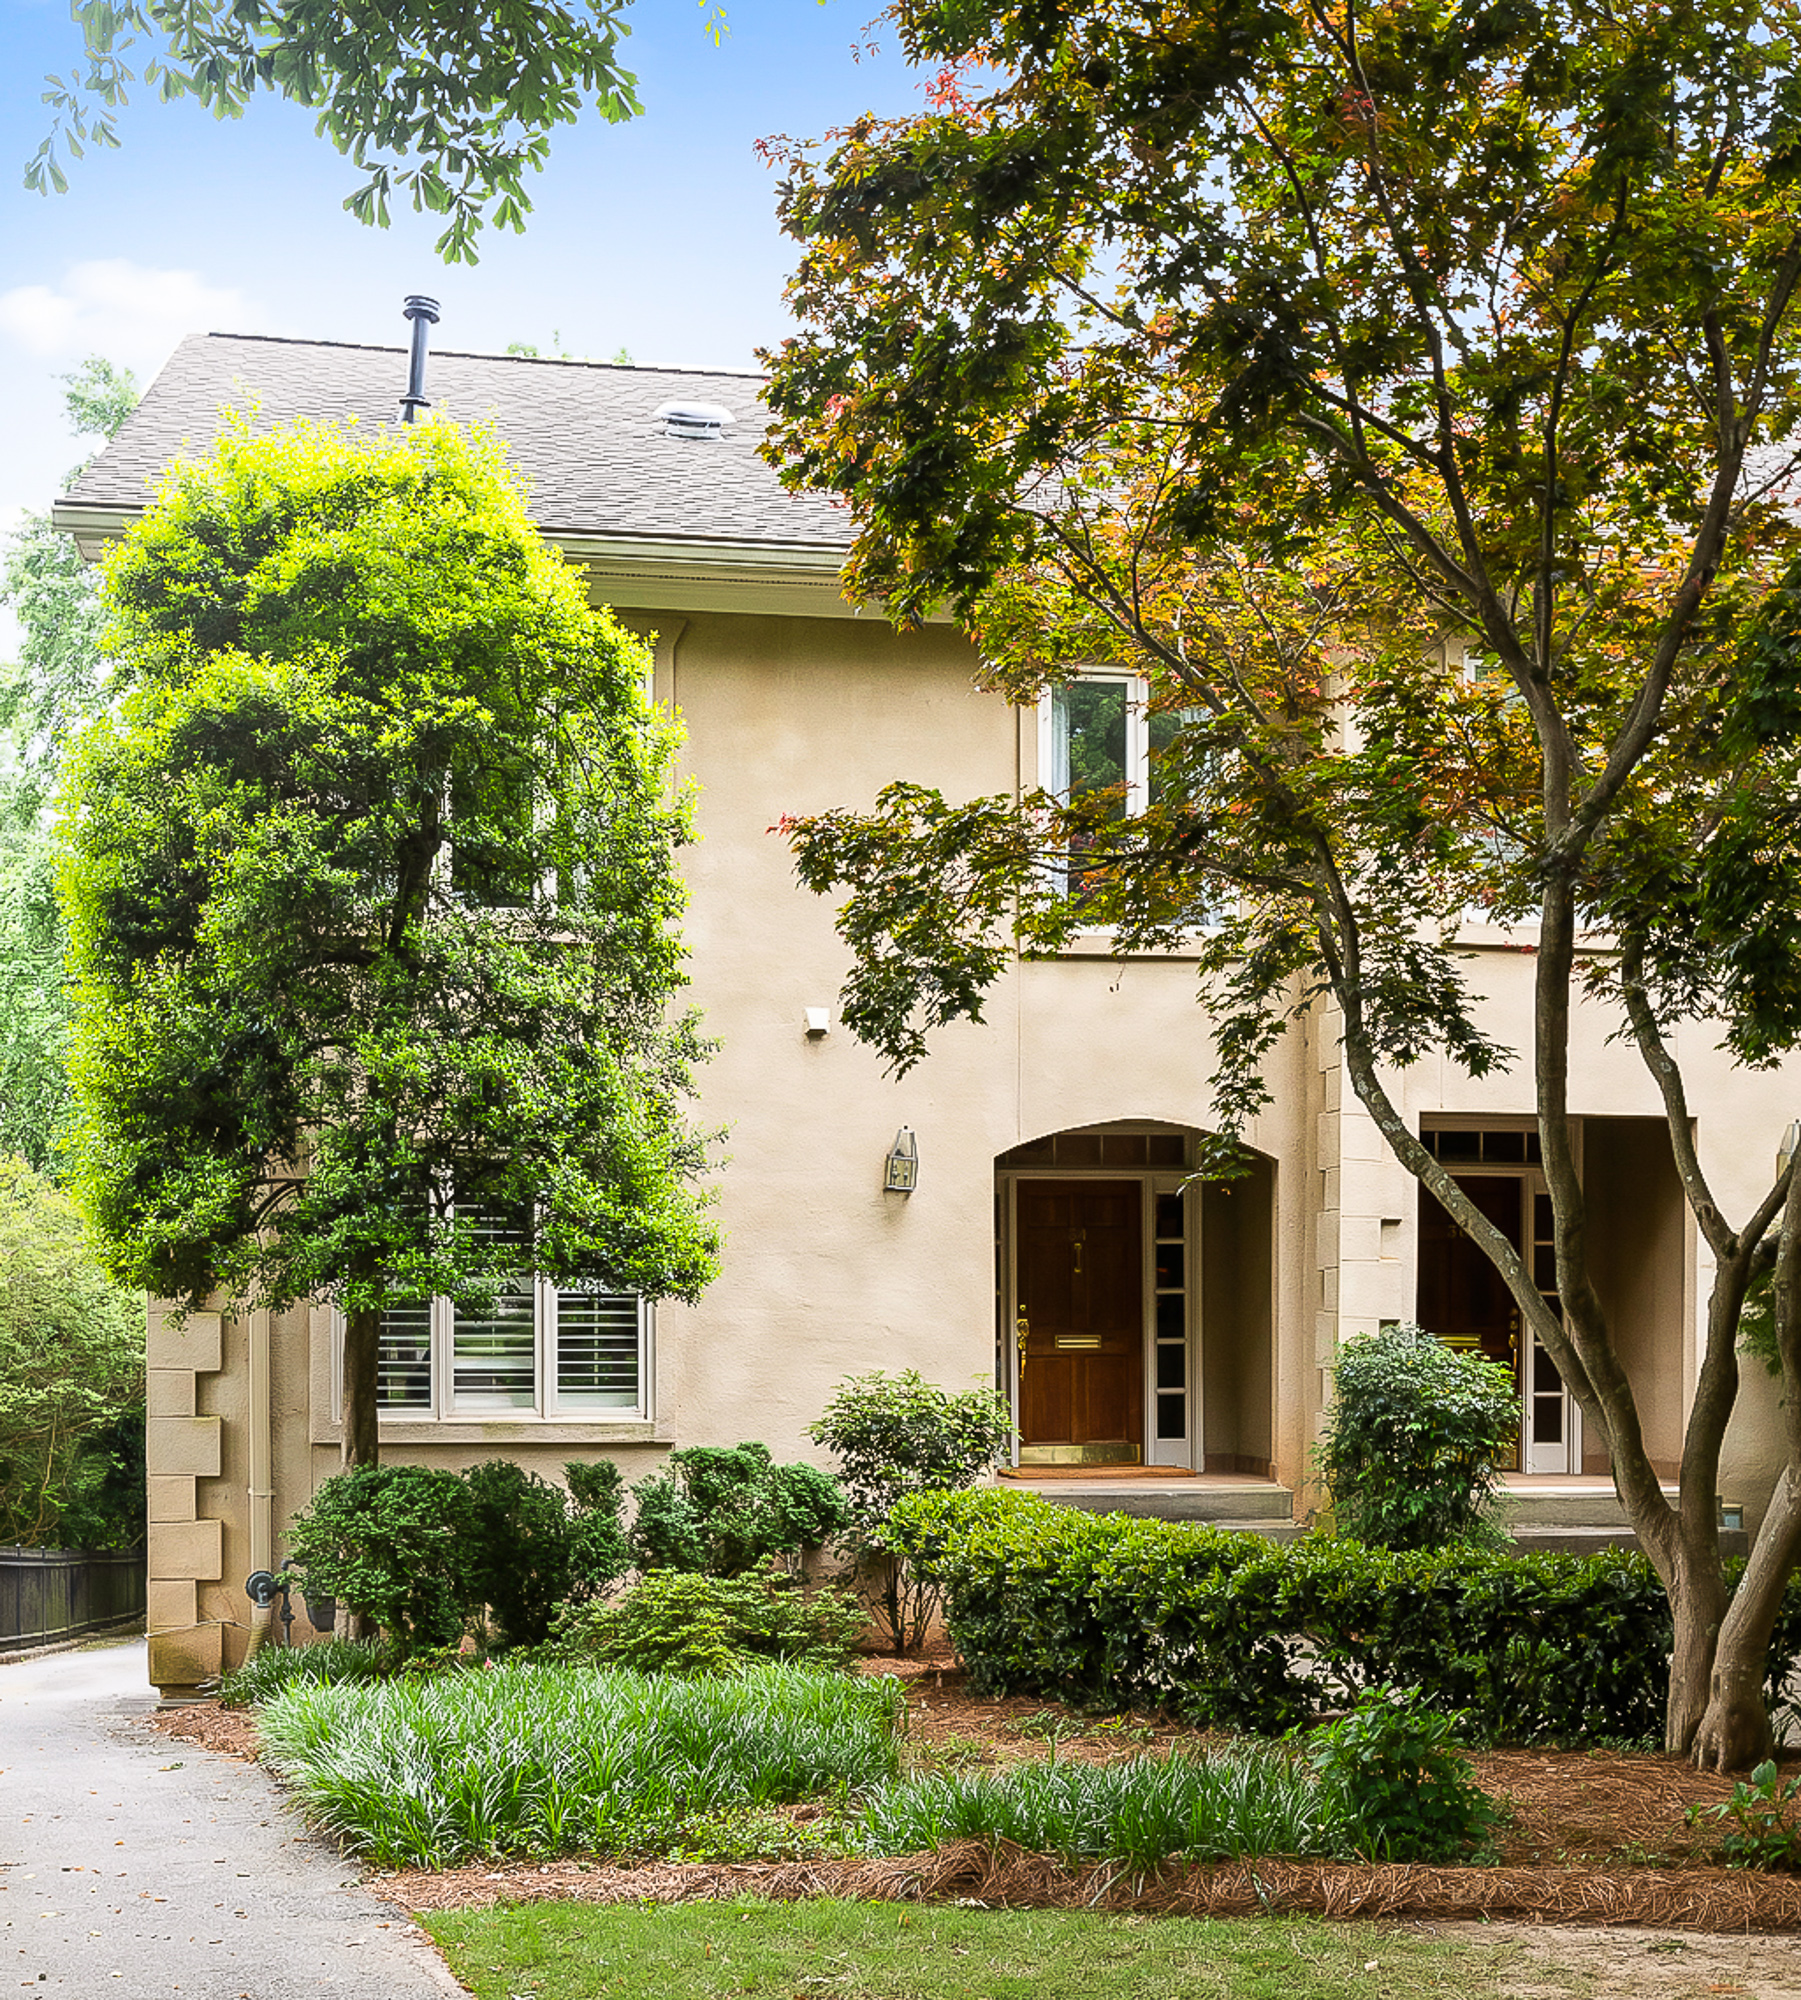 34 28th St Nw, Atlanta, GA 30309-1-2.jpg